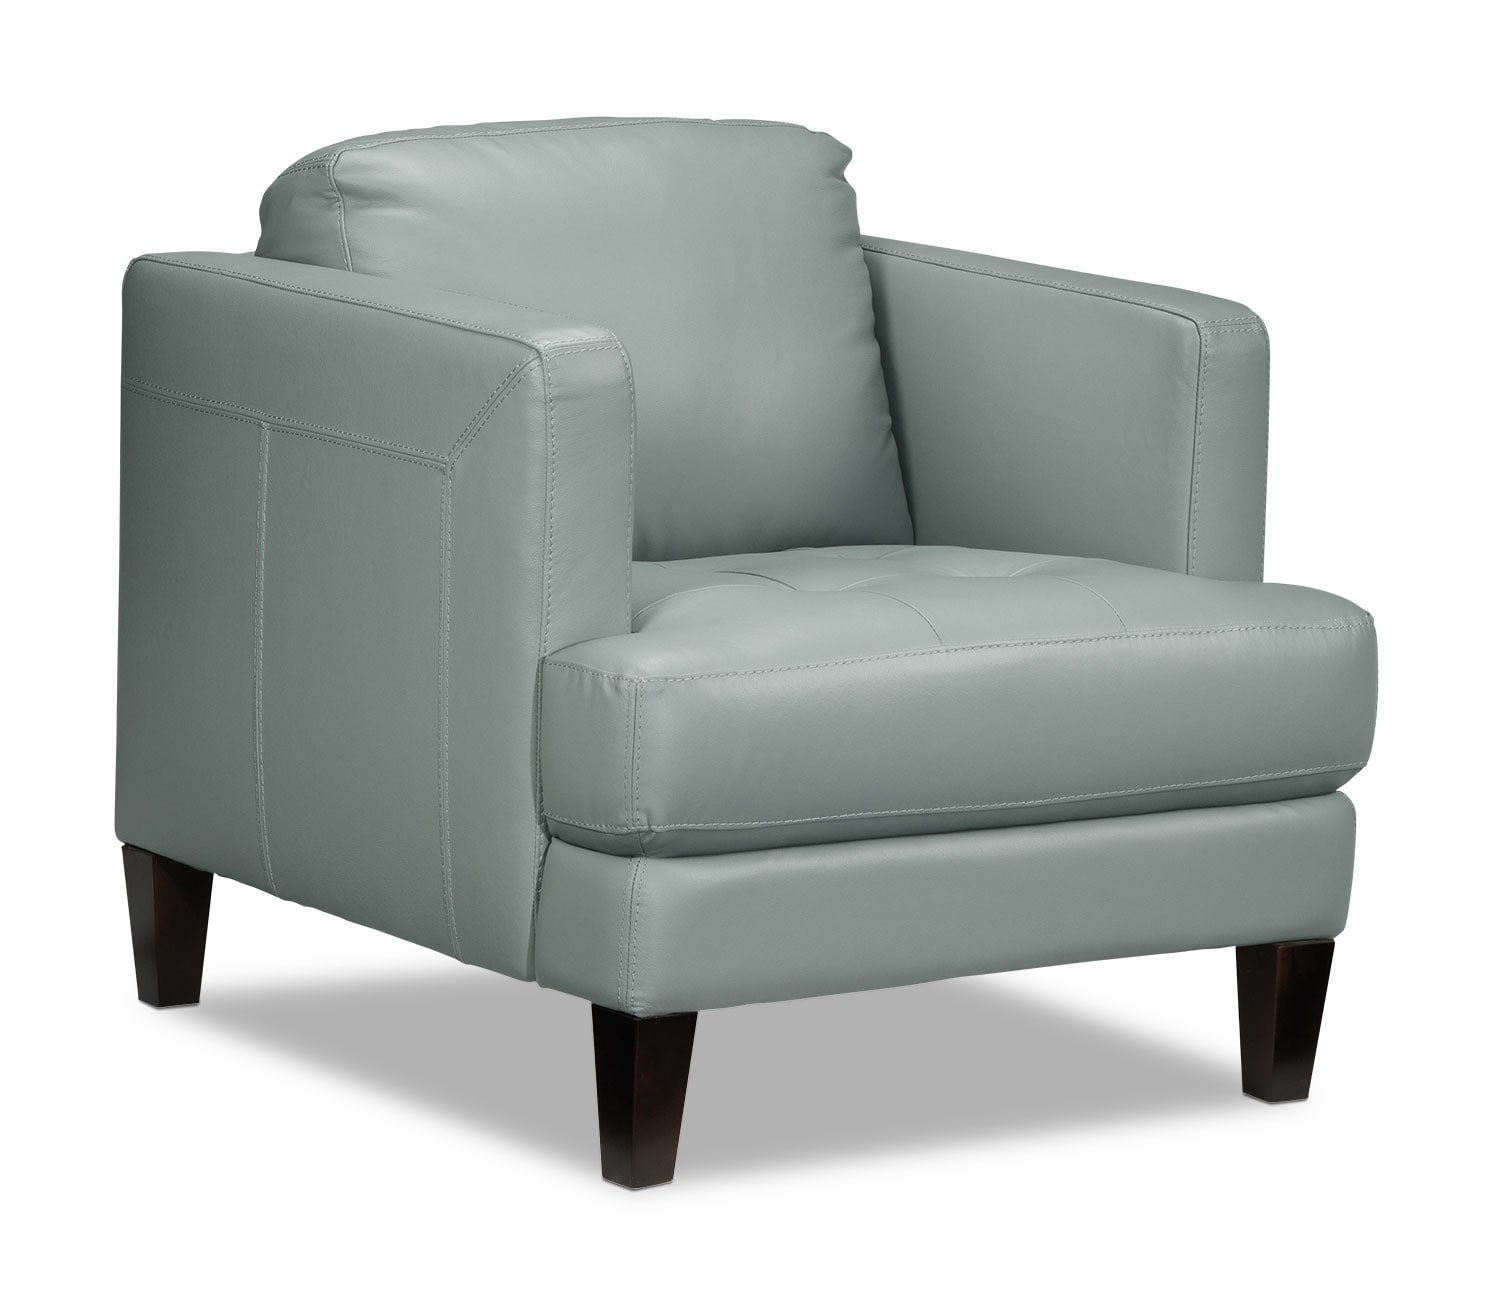 Living Room Furniture - Walker Chair - Seafoam